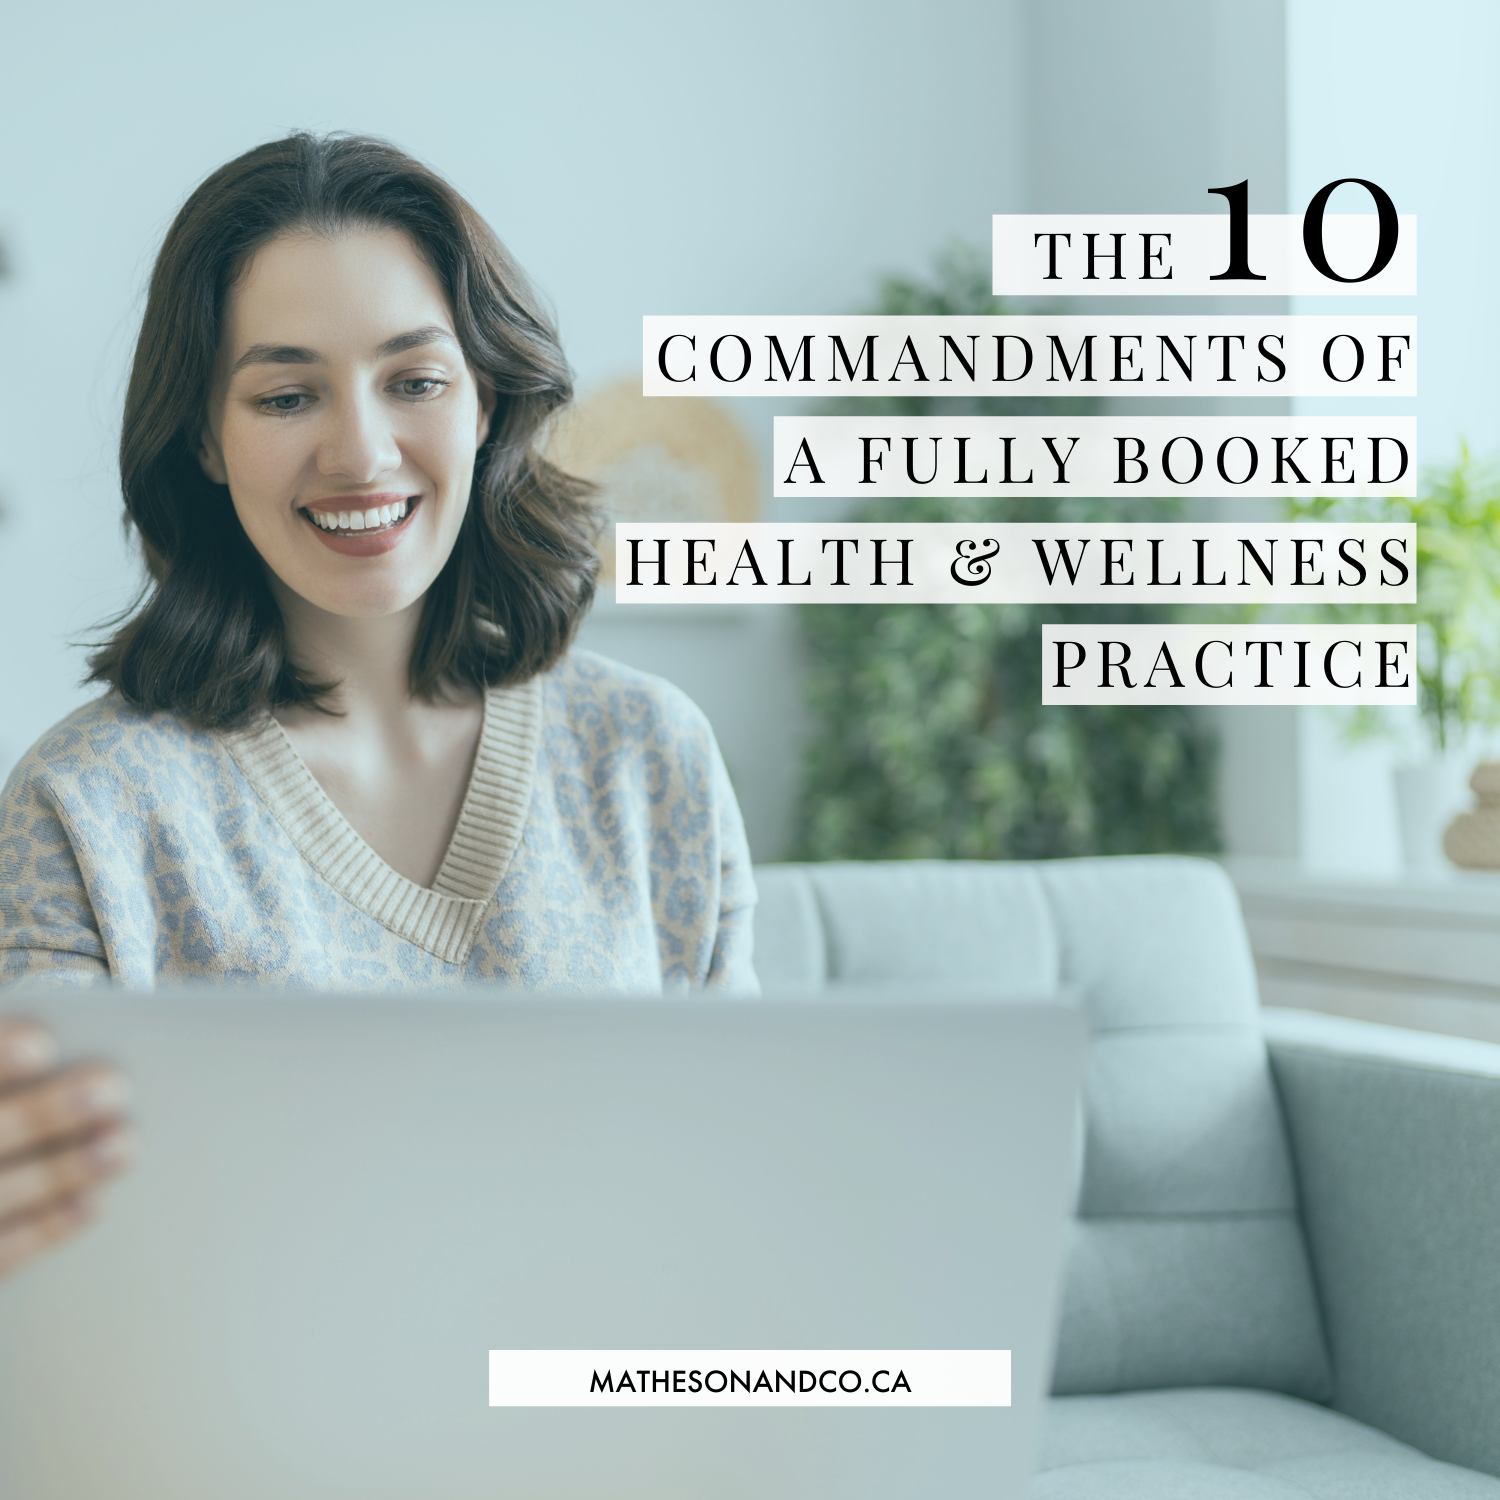 The 10 Commandments of a Fully Booked Health + Wellness Practice